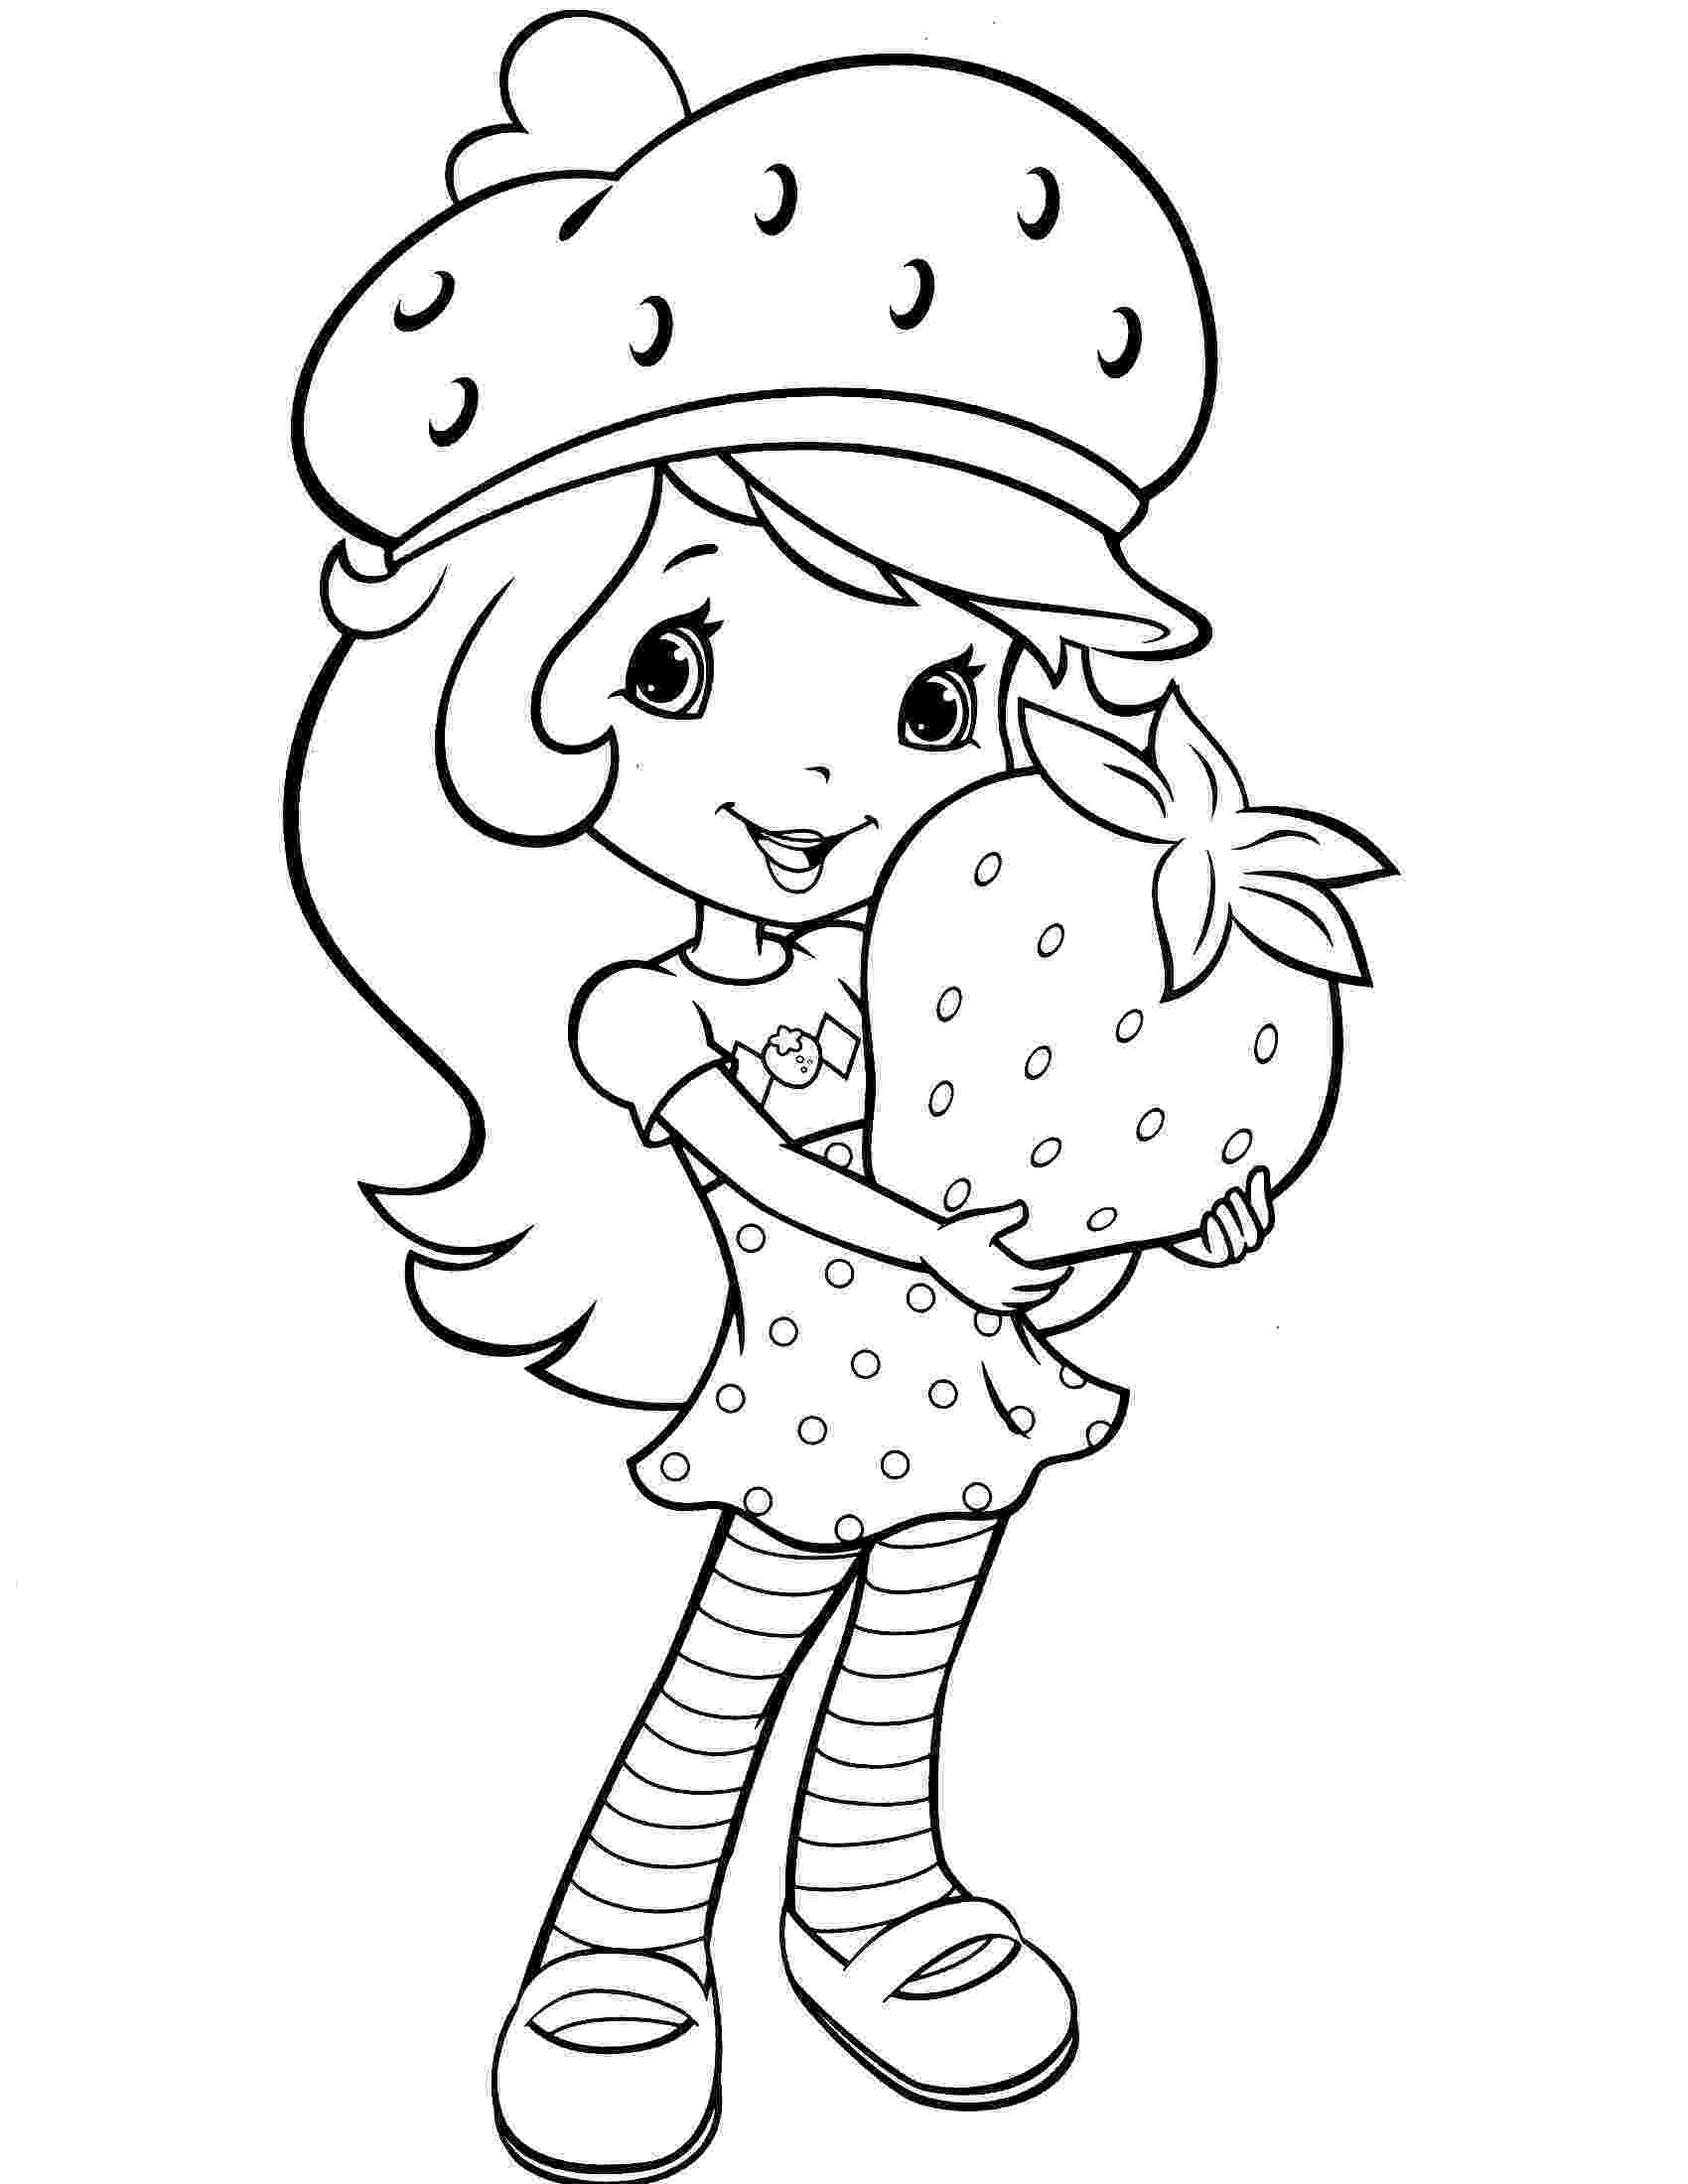 coloring strawberry strawberry coloring pages coloring pages to download and strawberry coloring